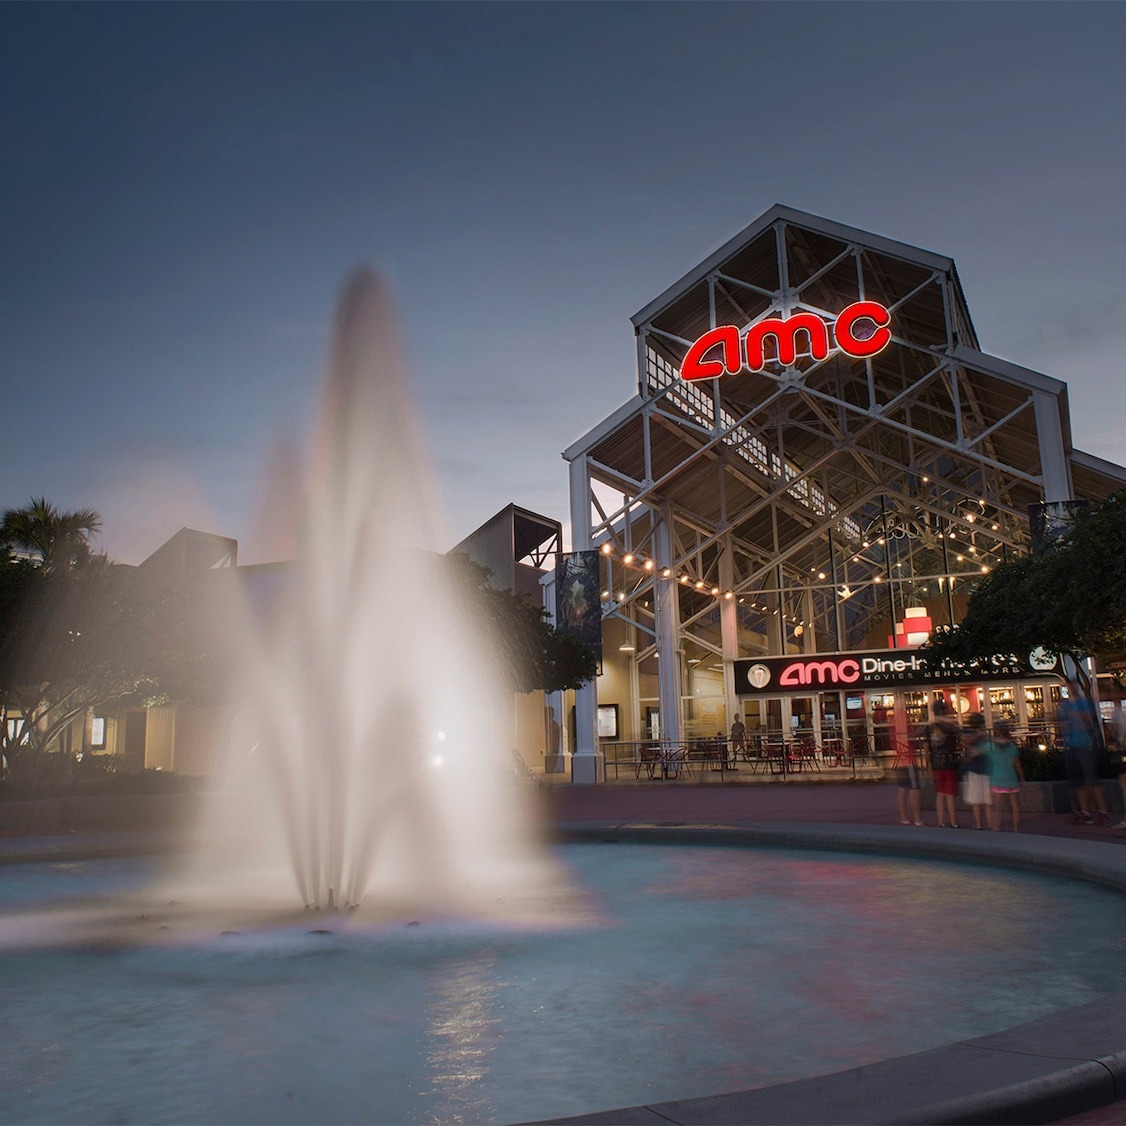 AMC Theatres reopening Aug. 20 with 15-cent movie tickets! #DisneySprings 1